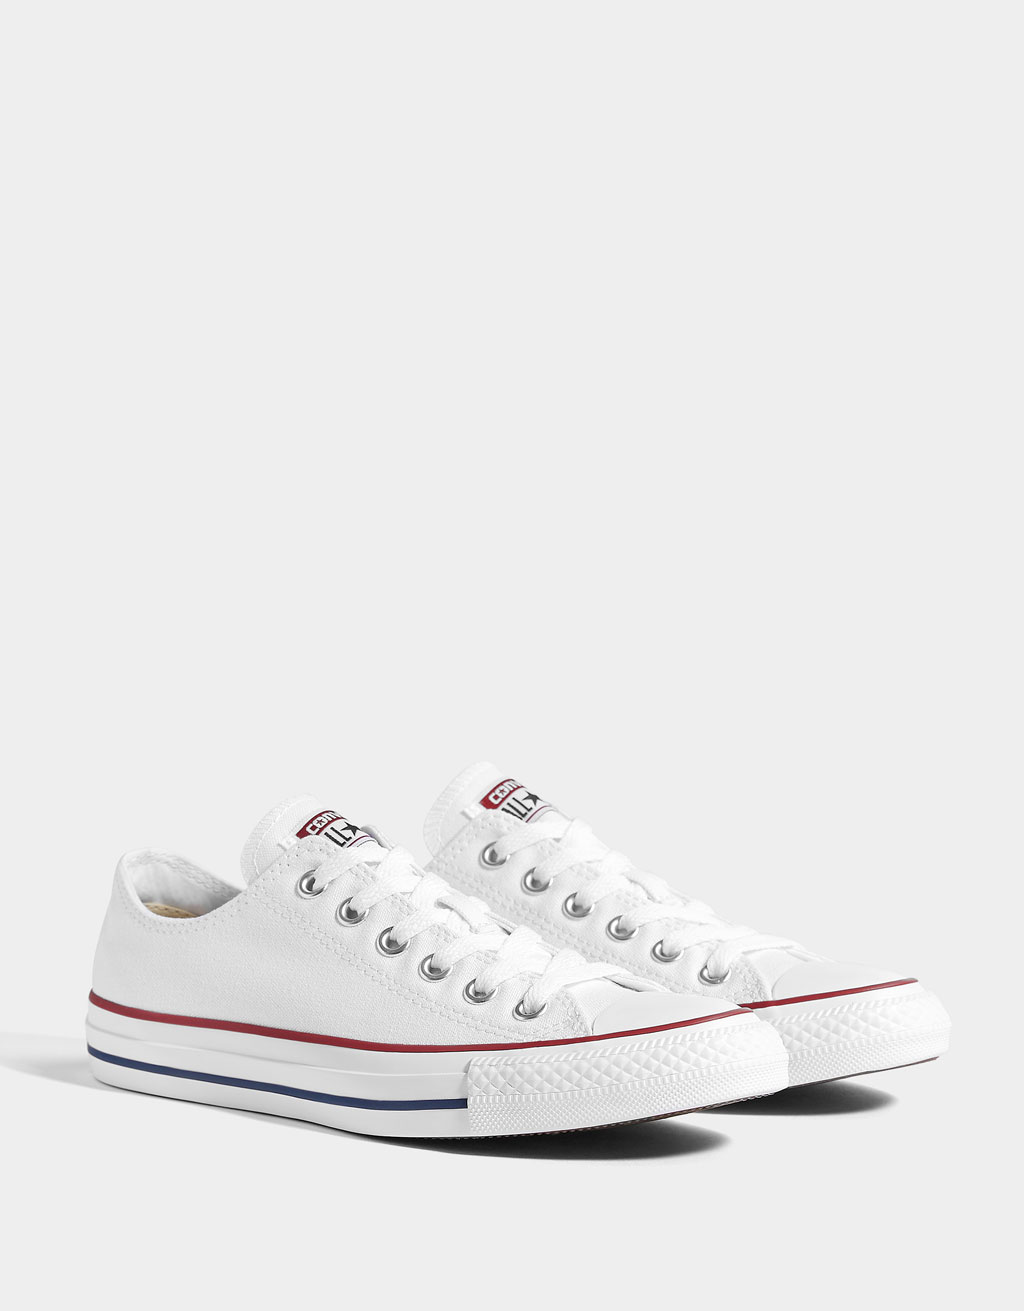 Tennis CONVERSE CHUCK TAYLOR ALL STAR